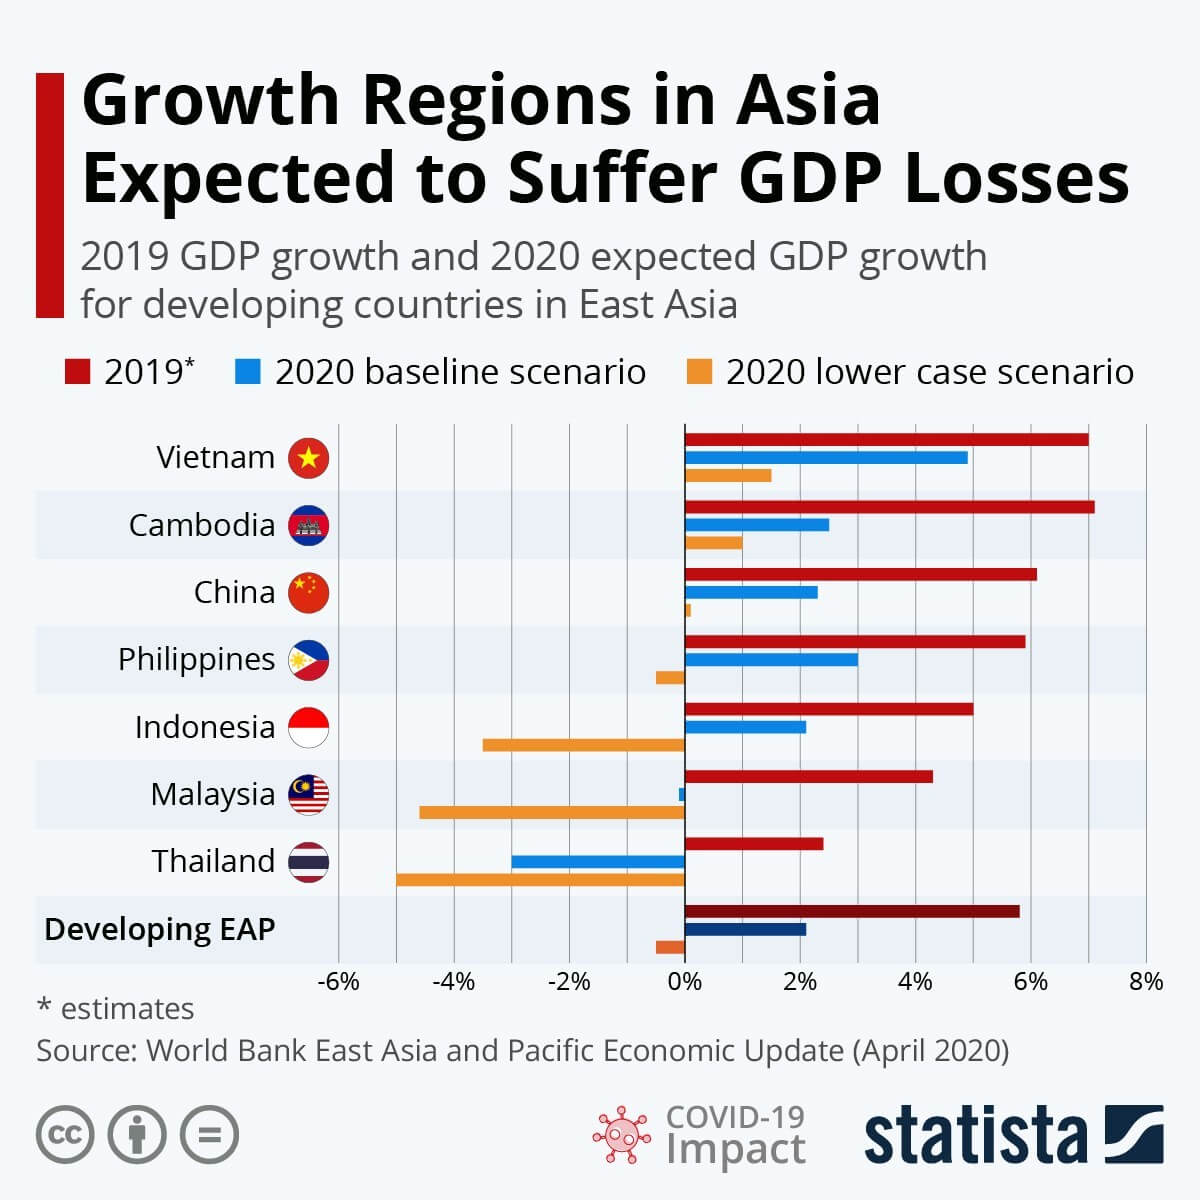 How bad is COVID-19's impact on Asian developing economies?